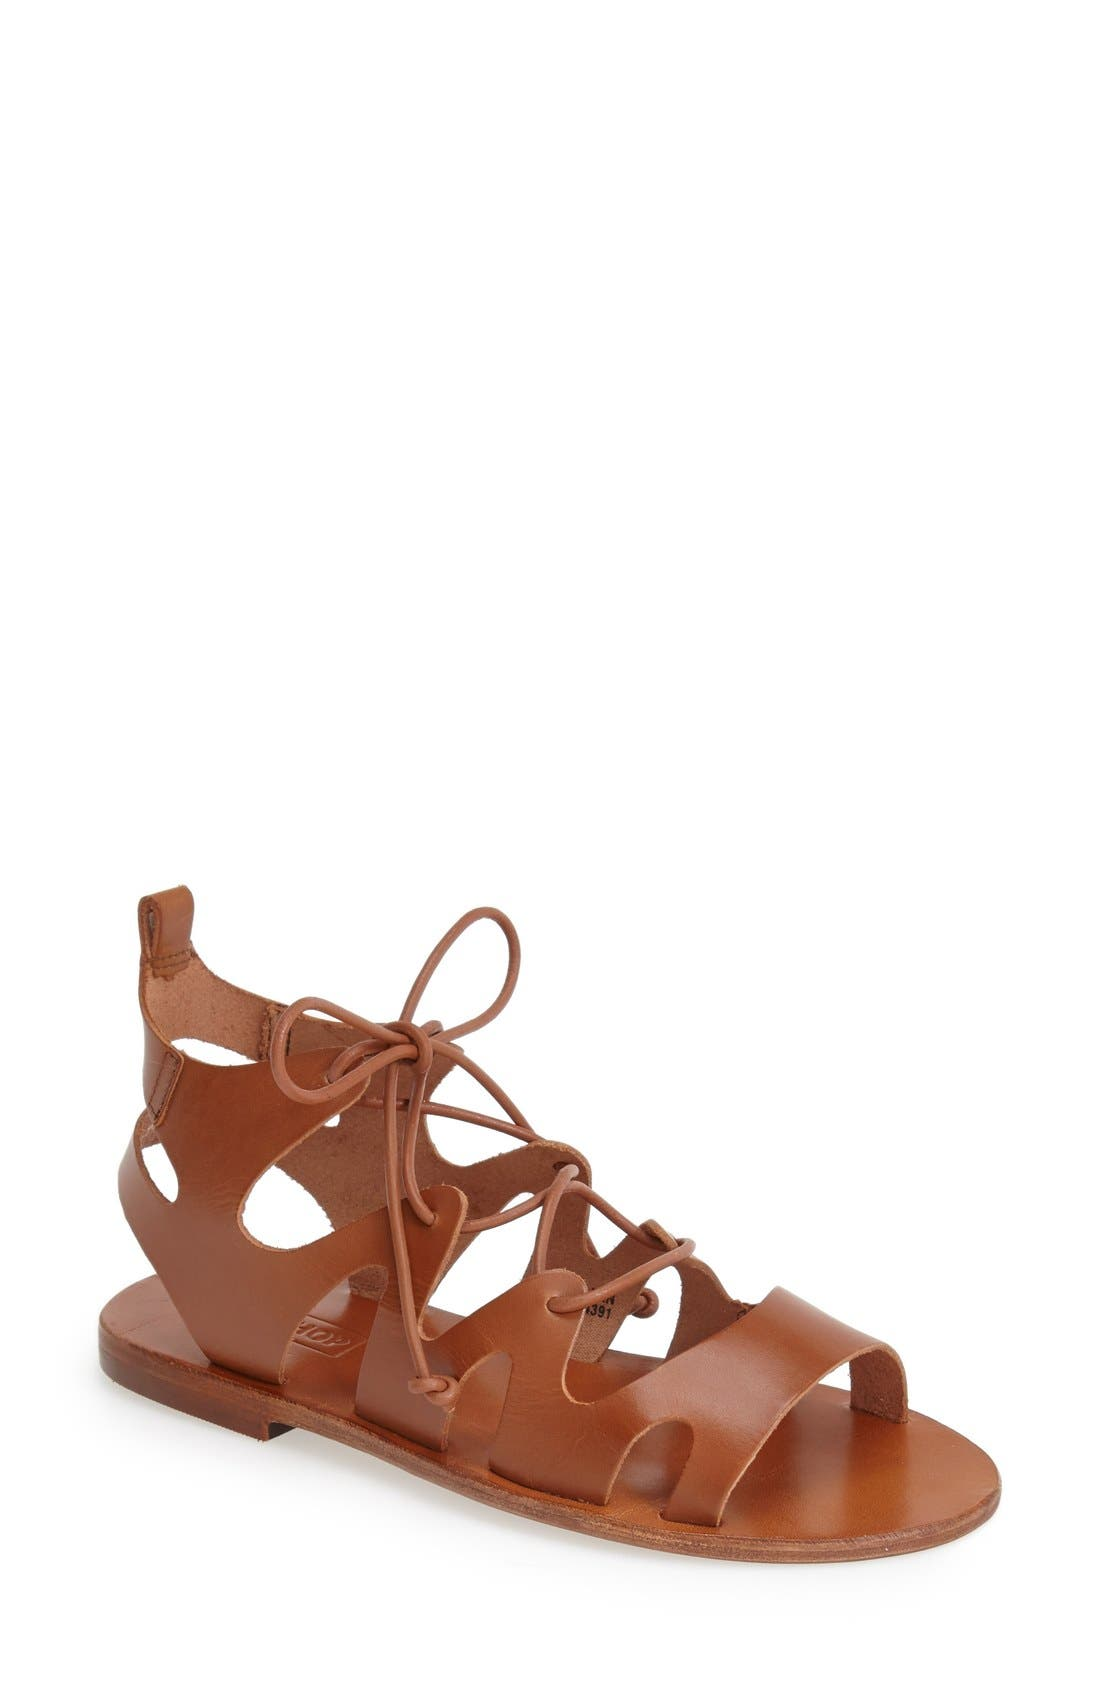 'Fig' Cutout Lace-Up Gladiator Sandal,                             Main thumbnail 1, color,                             210